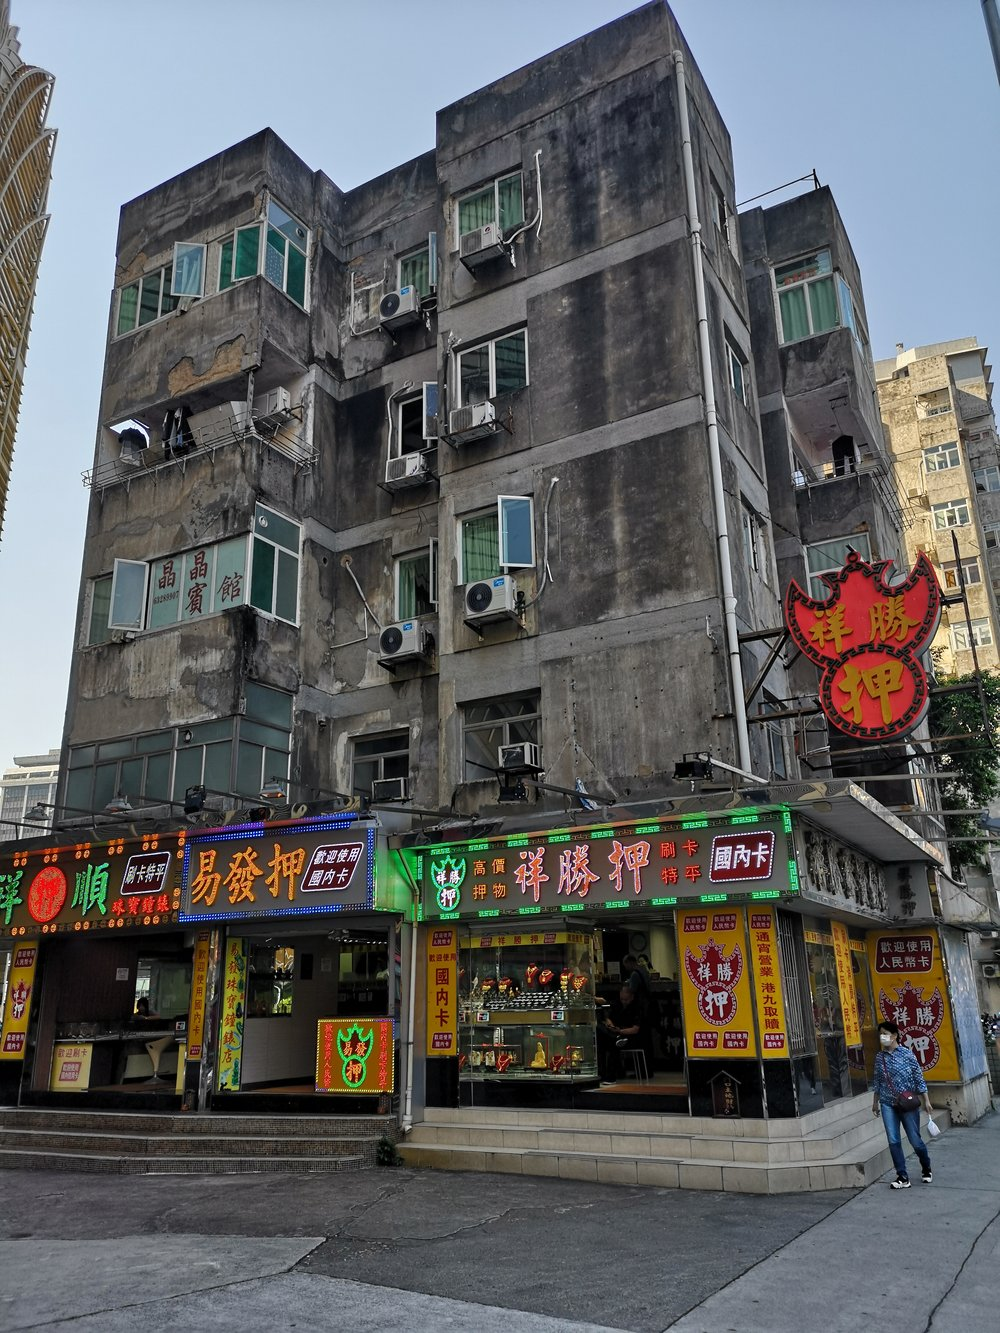 The really powerful places in Macau are the Pawn Shops. They can afford to stay in prime locations, with these kinds of buildings and they won't sell. For what?